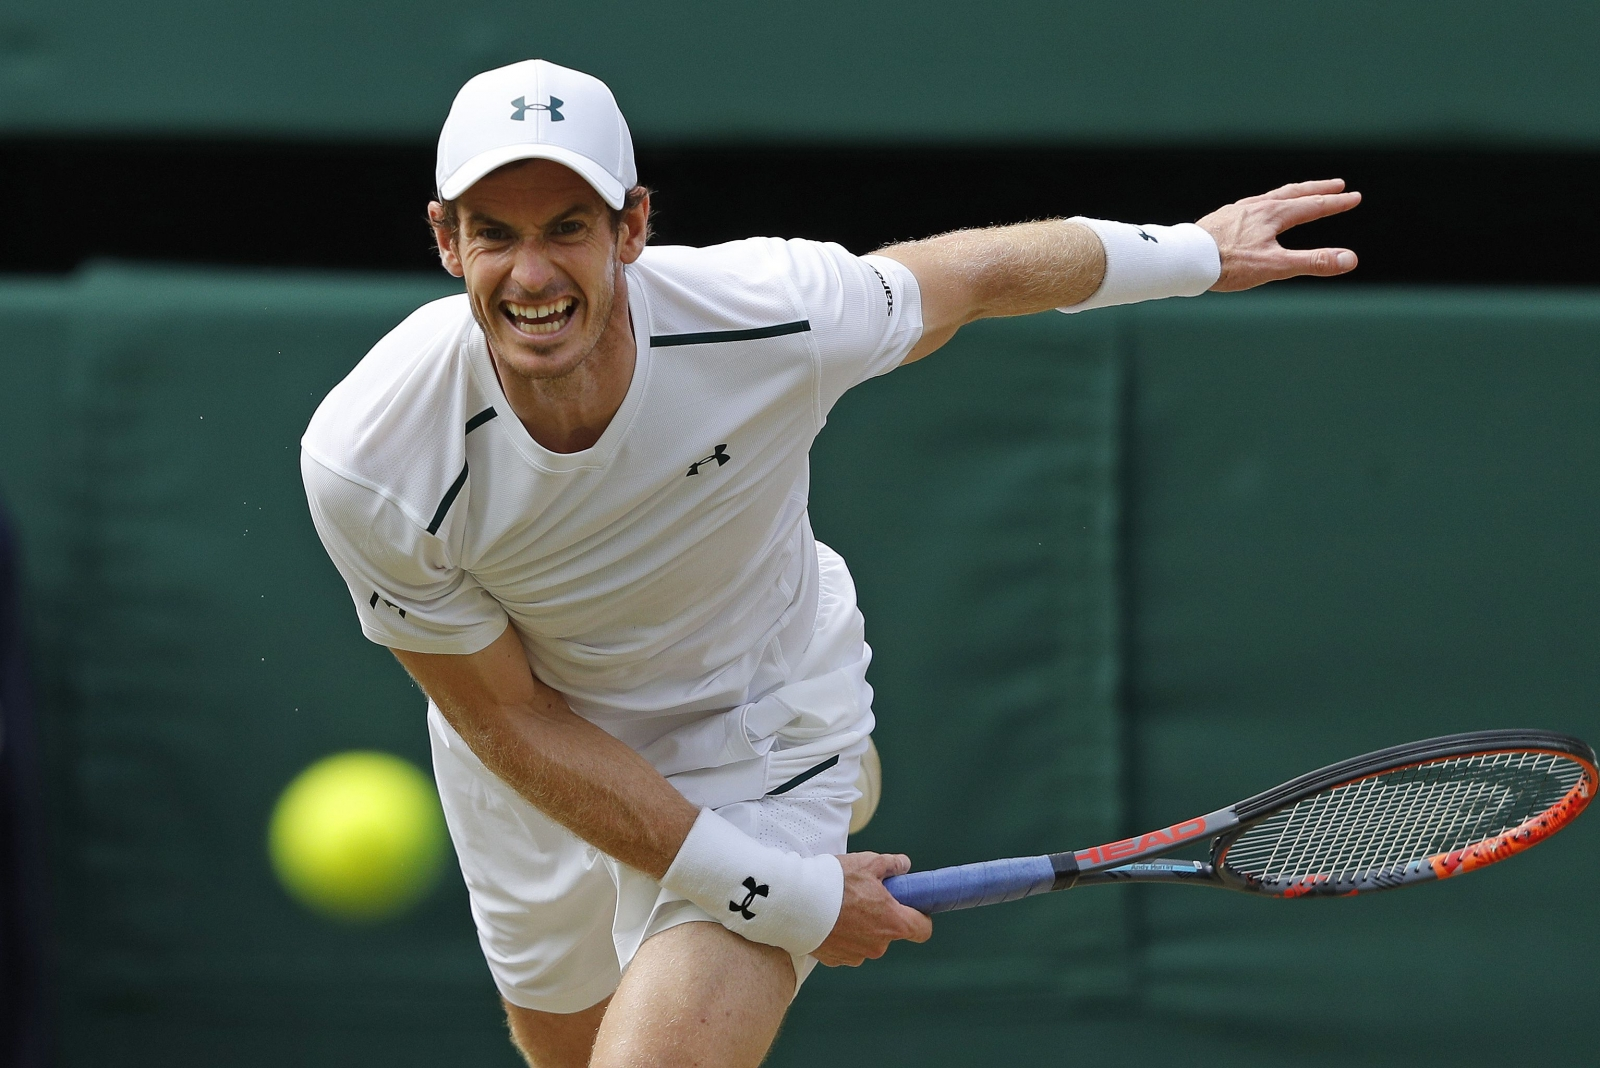 Murray and Konta geared up for fourth round at Wimbledon